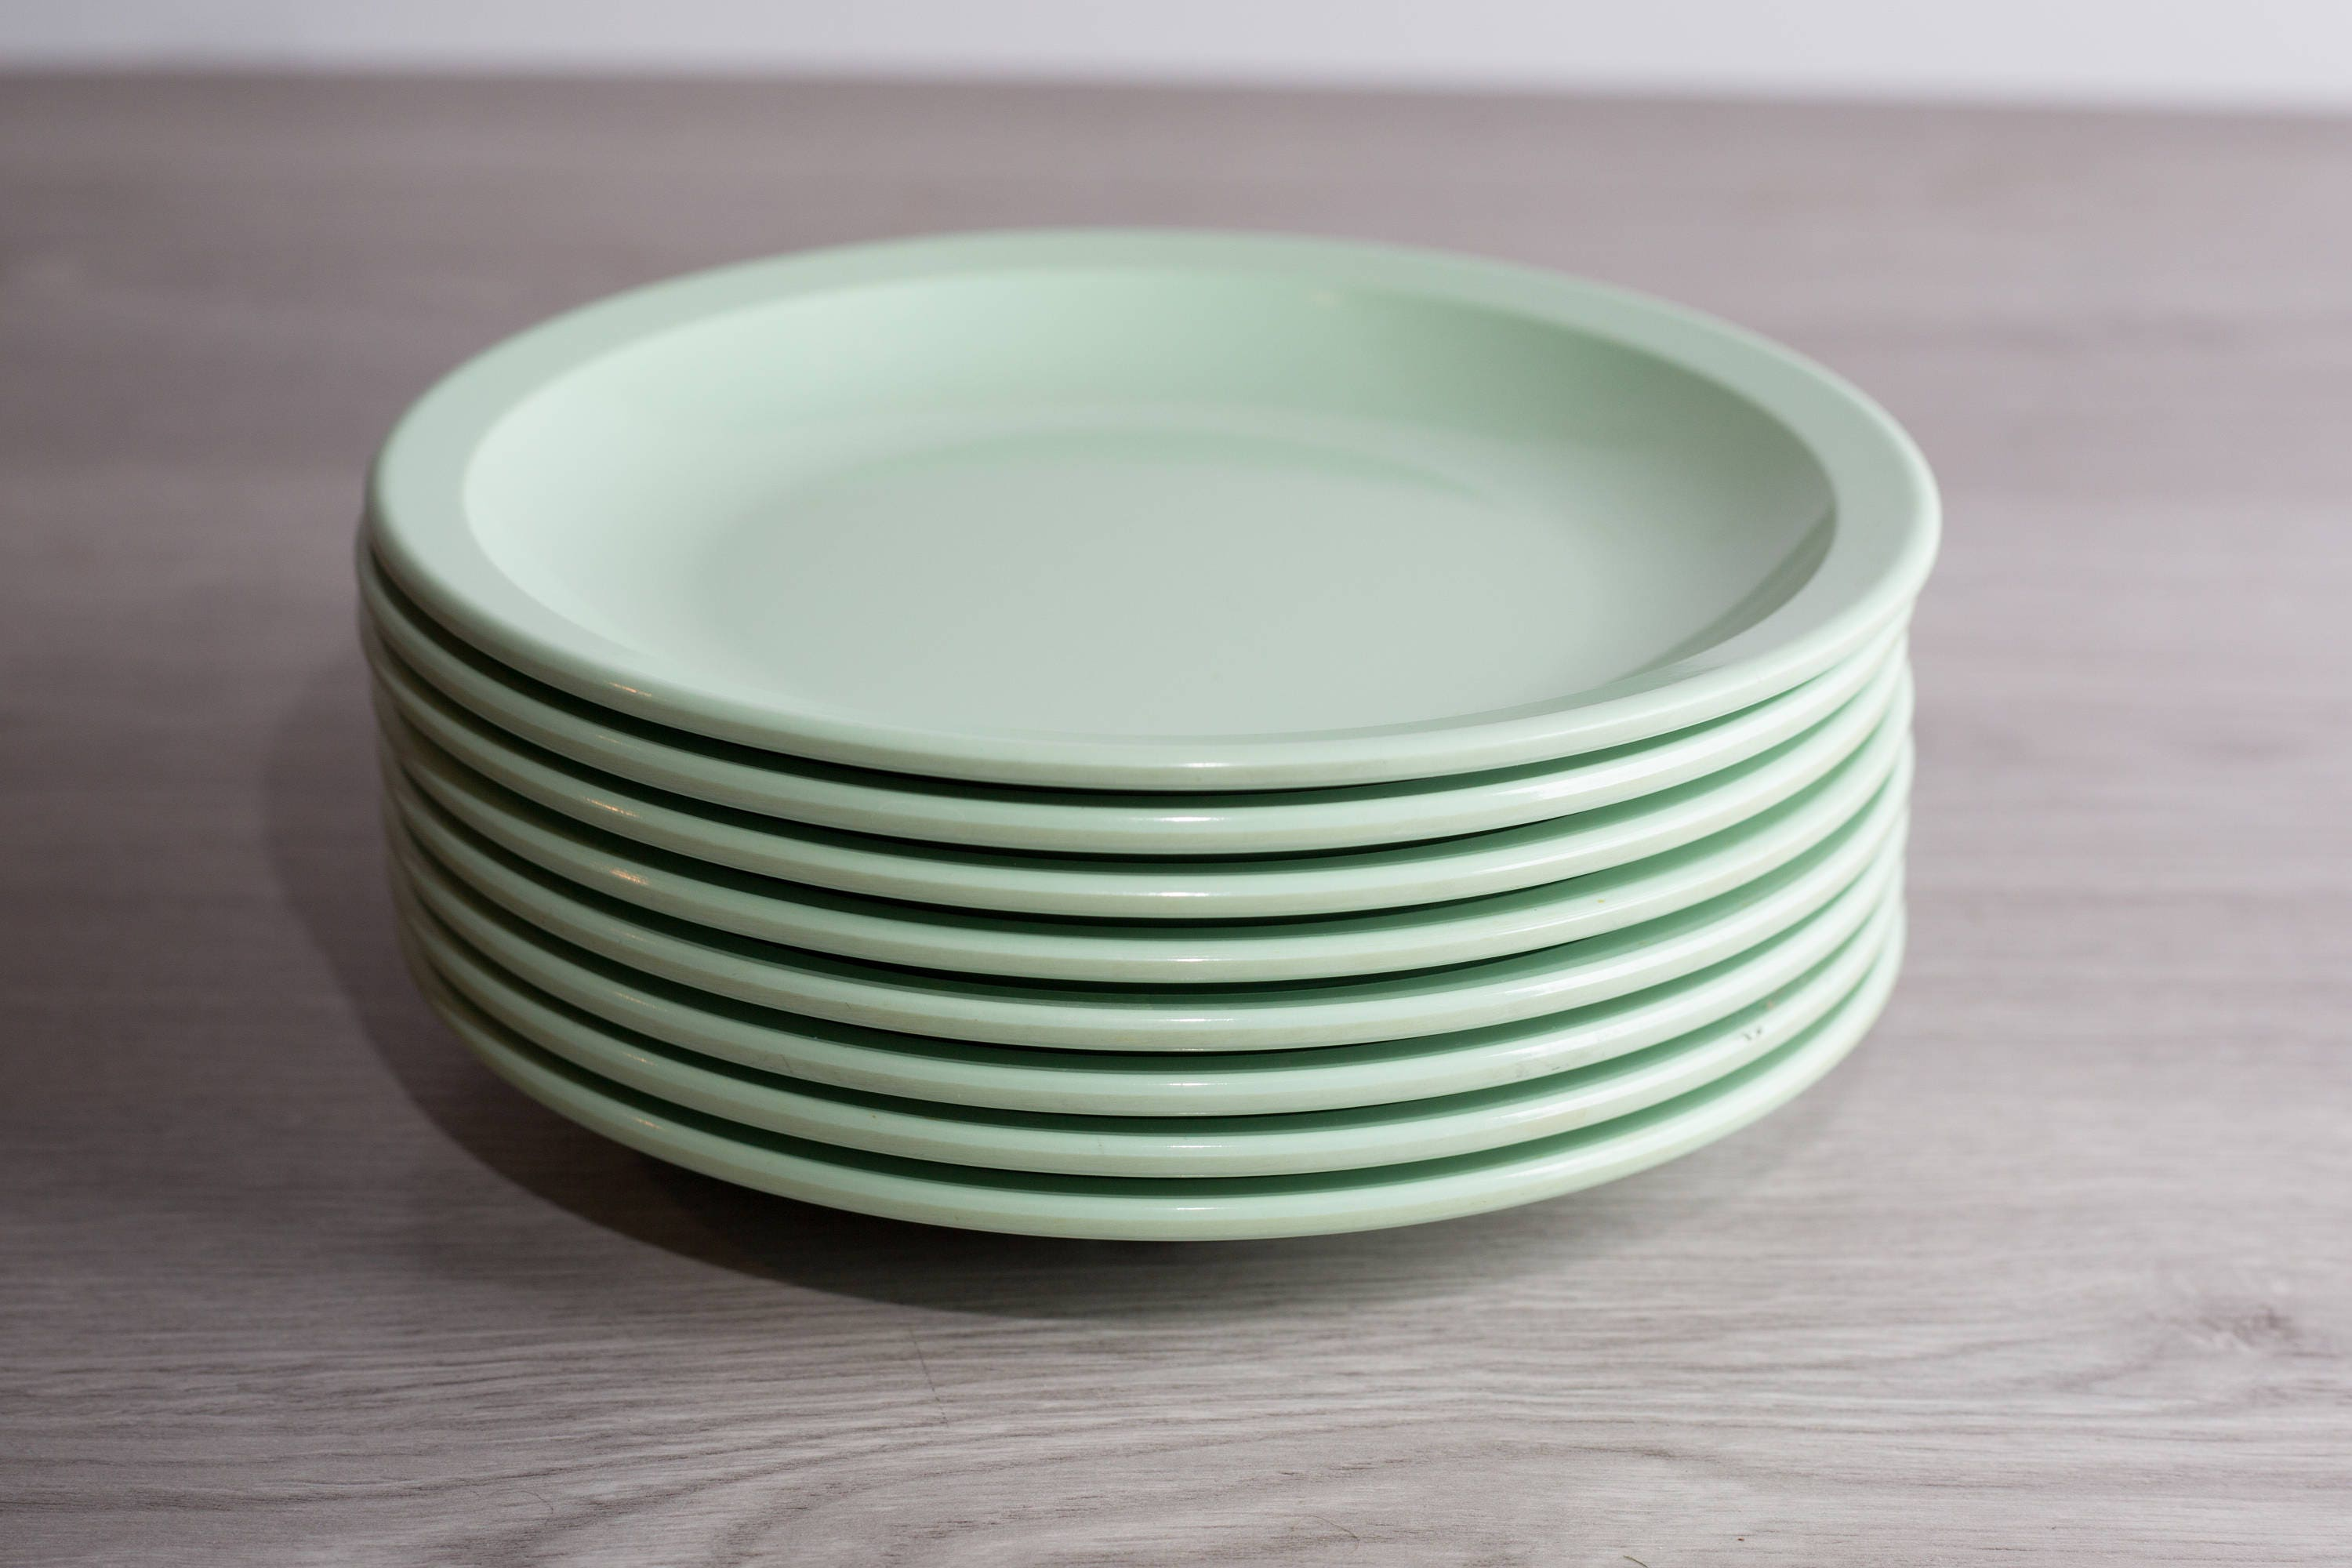 Vintage Melmac Melamine Plates / 8 piece Set Soft Green Dinnerware Dinner Plates by GPL Melmac / Made in Canada / Pastel C&ing Bowls & Vintage Melmac Melamine Plates / 8 piece Set Soft Green Dinnerware ...